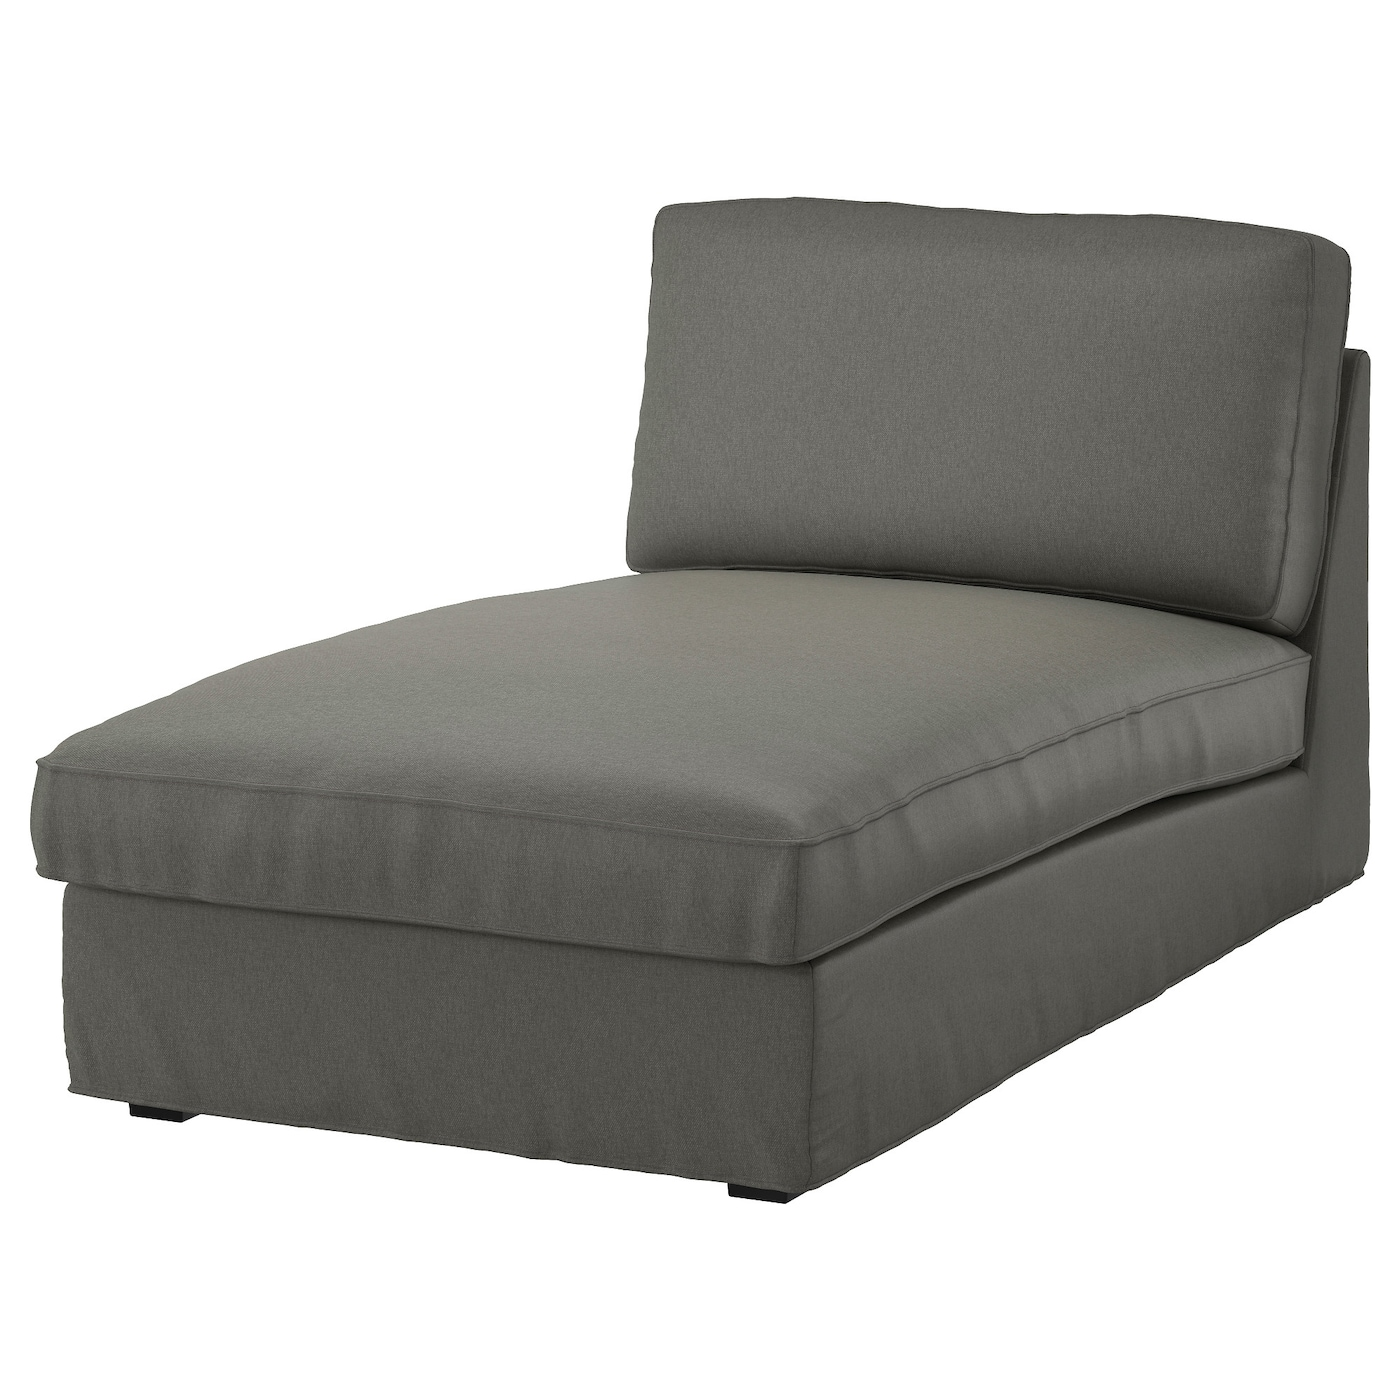 kivik cover for chaise longue borred grey green ikea. Black Bedroom Furniture Sets. Home Design Ideas